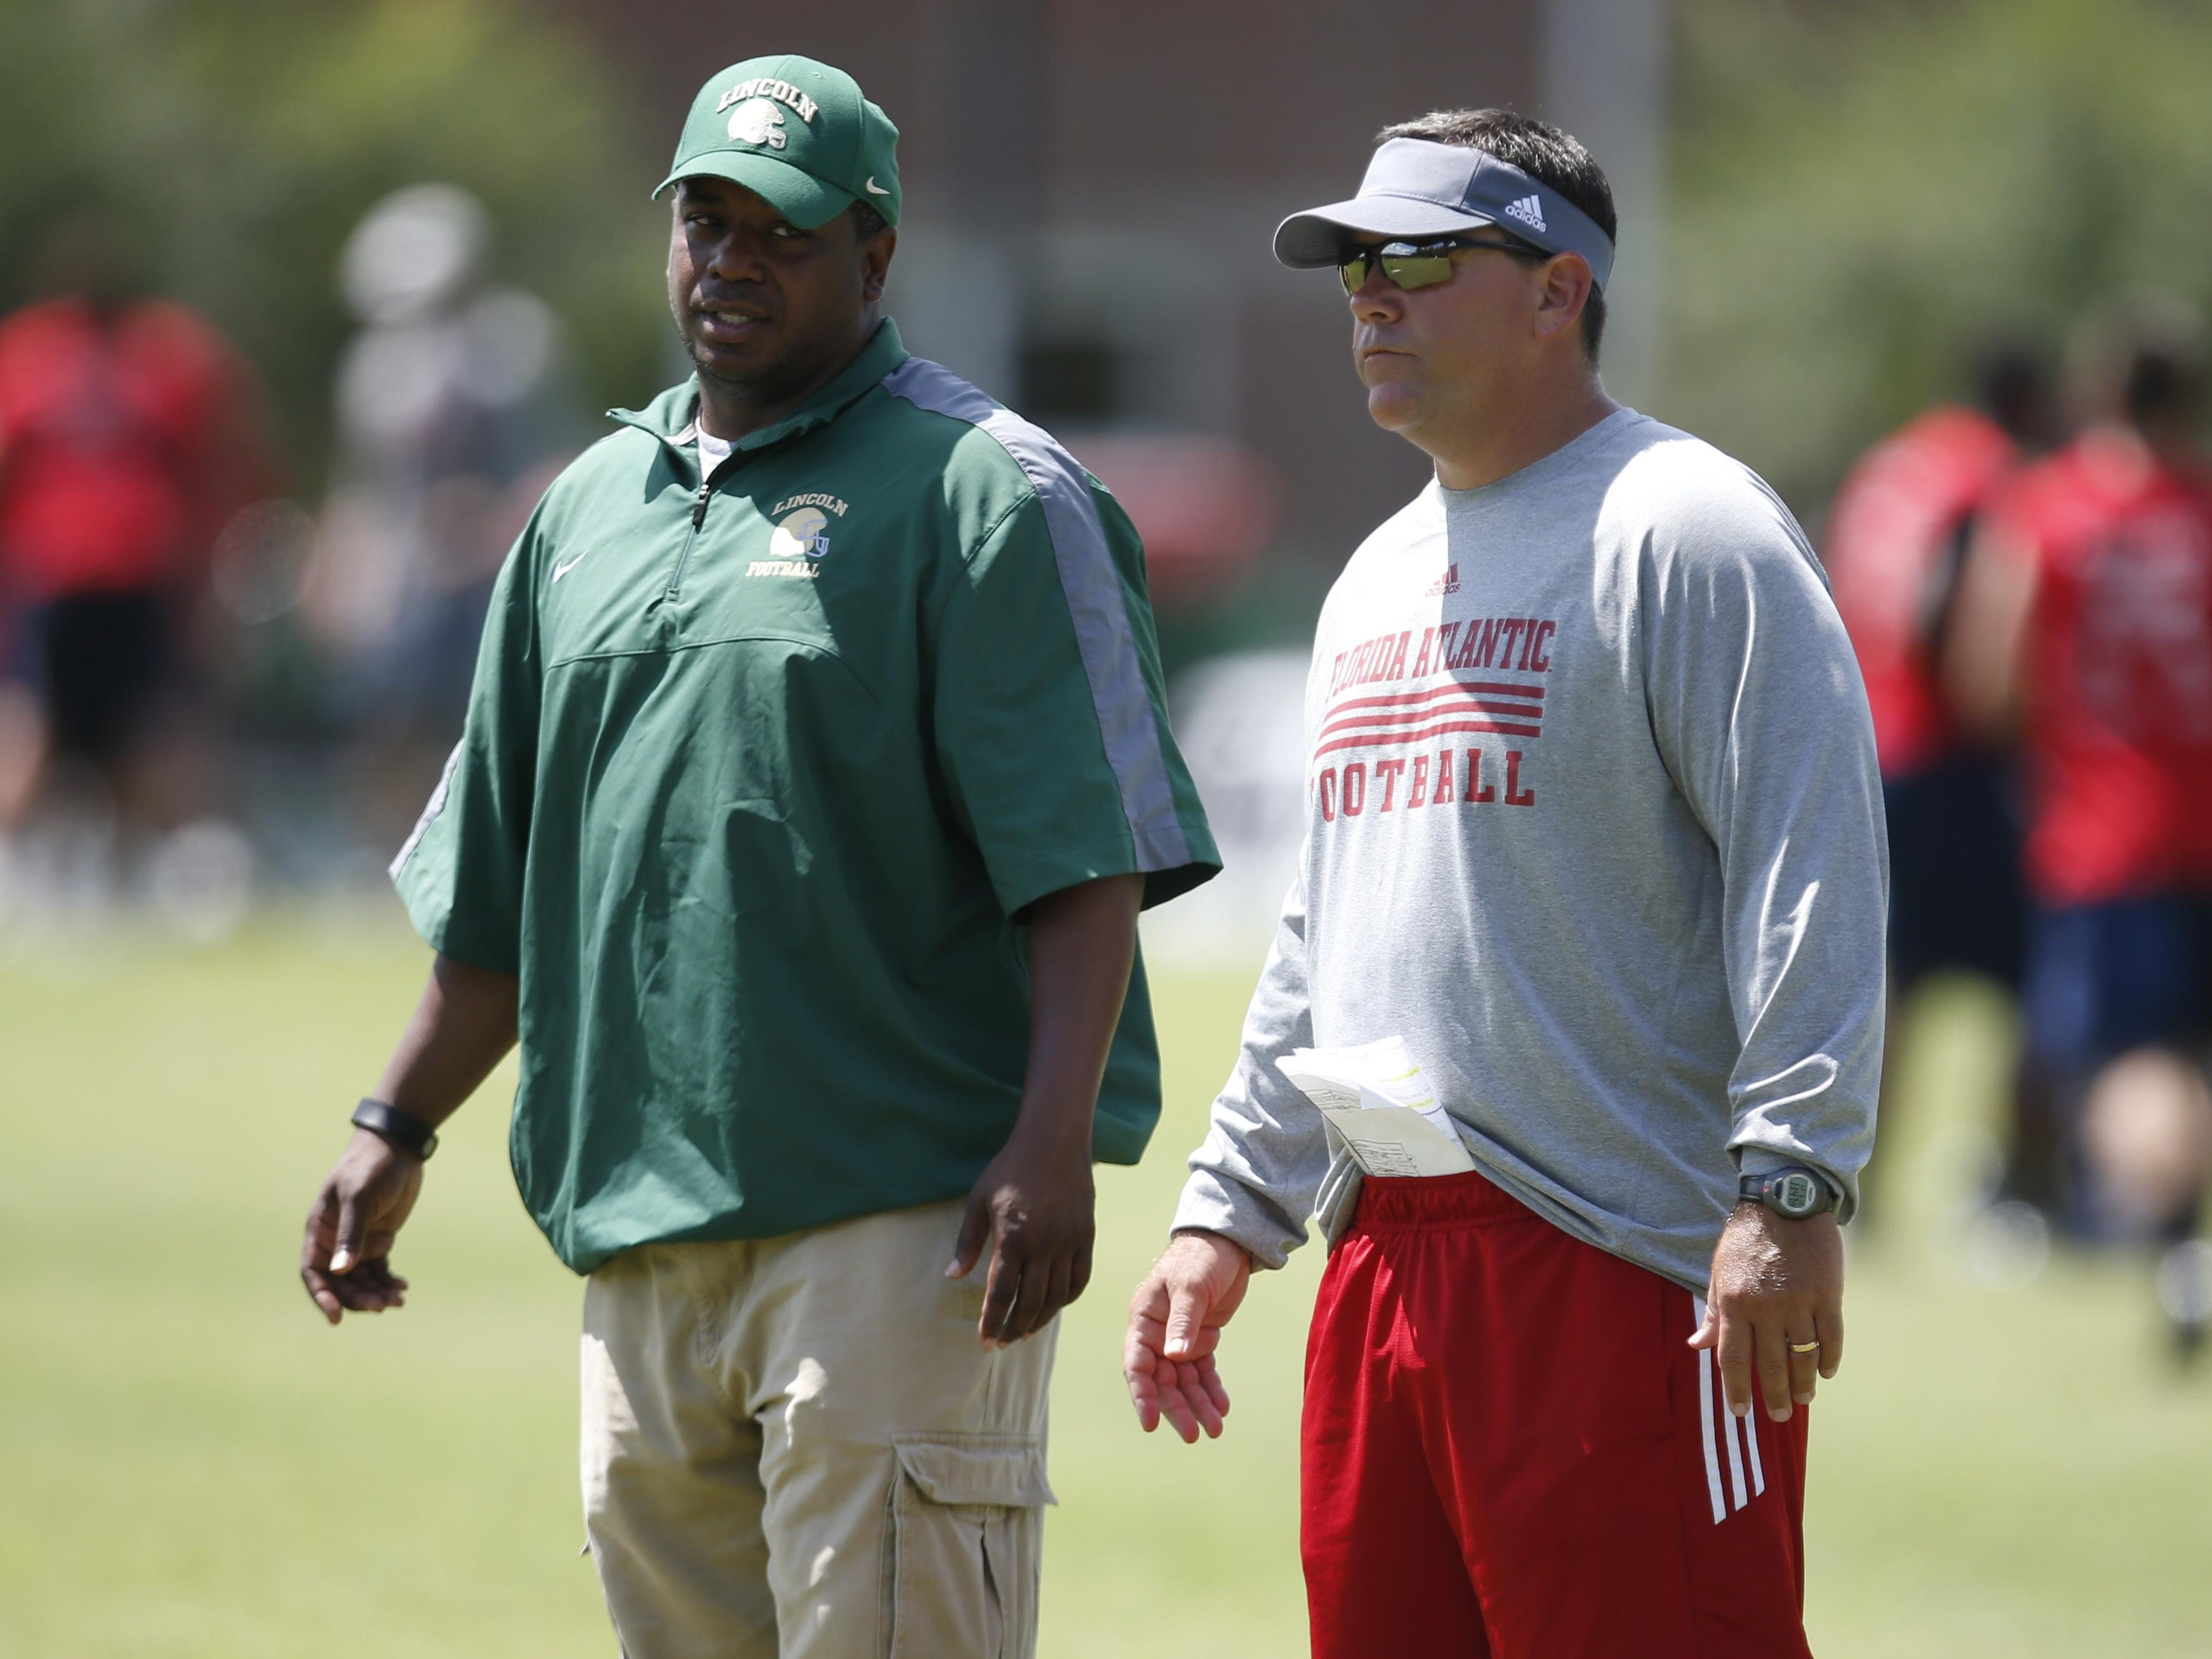 Lincoln High School Coach Yusuf Shakir, left, talks to Florida Atlantic head coach Charlie Partridge during drills at the Florida Atlantic Football Camp at Lawson Chiles High School on Friday.